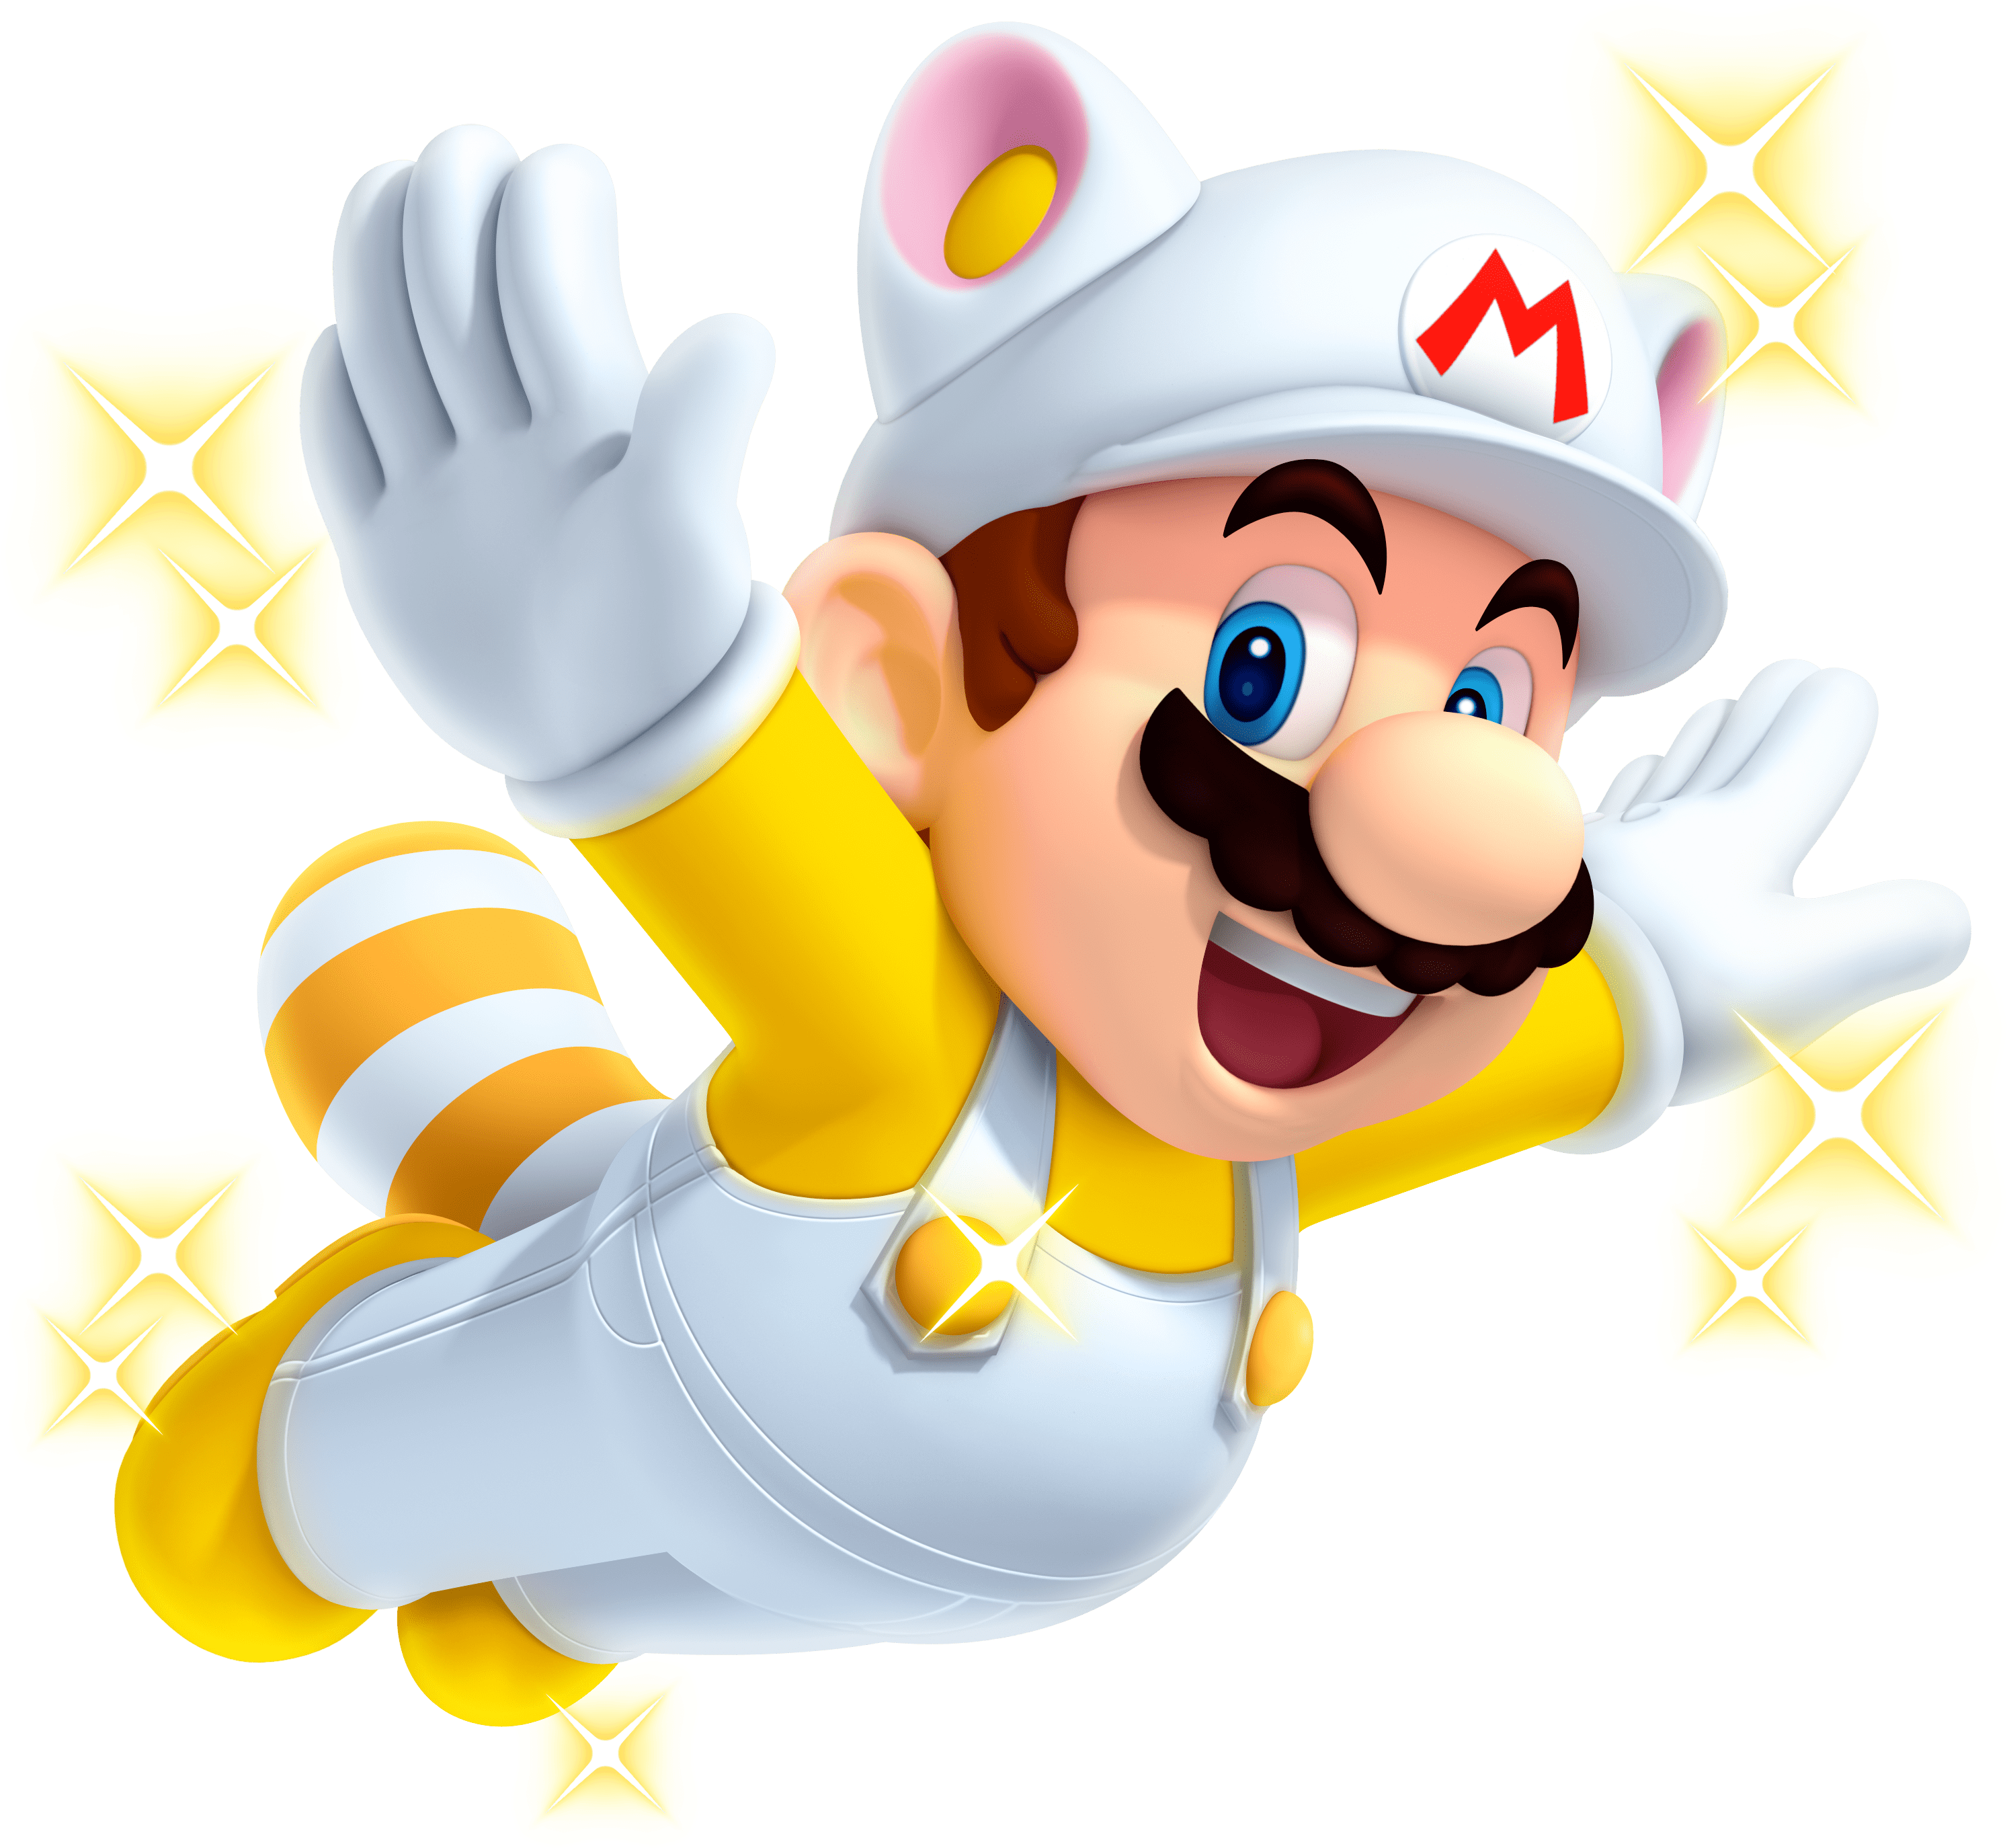 Mario Flying Transparent Png Stickpng